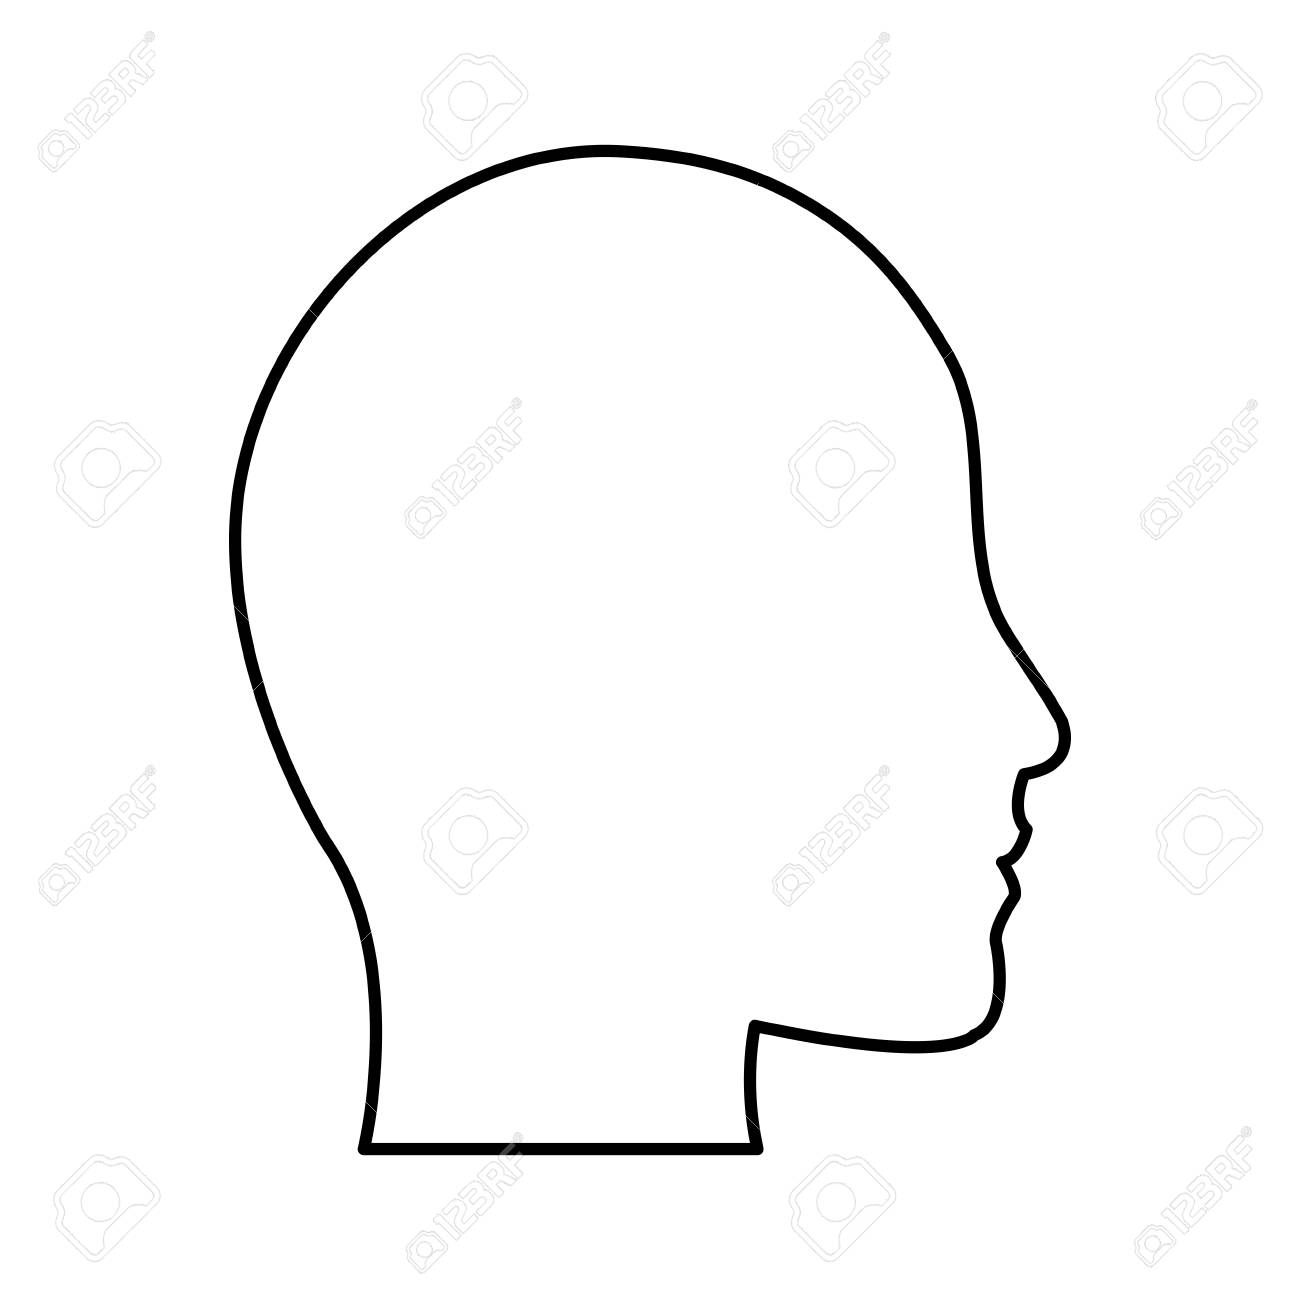 human head profile silhouette icon image vector illustration...